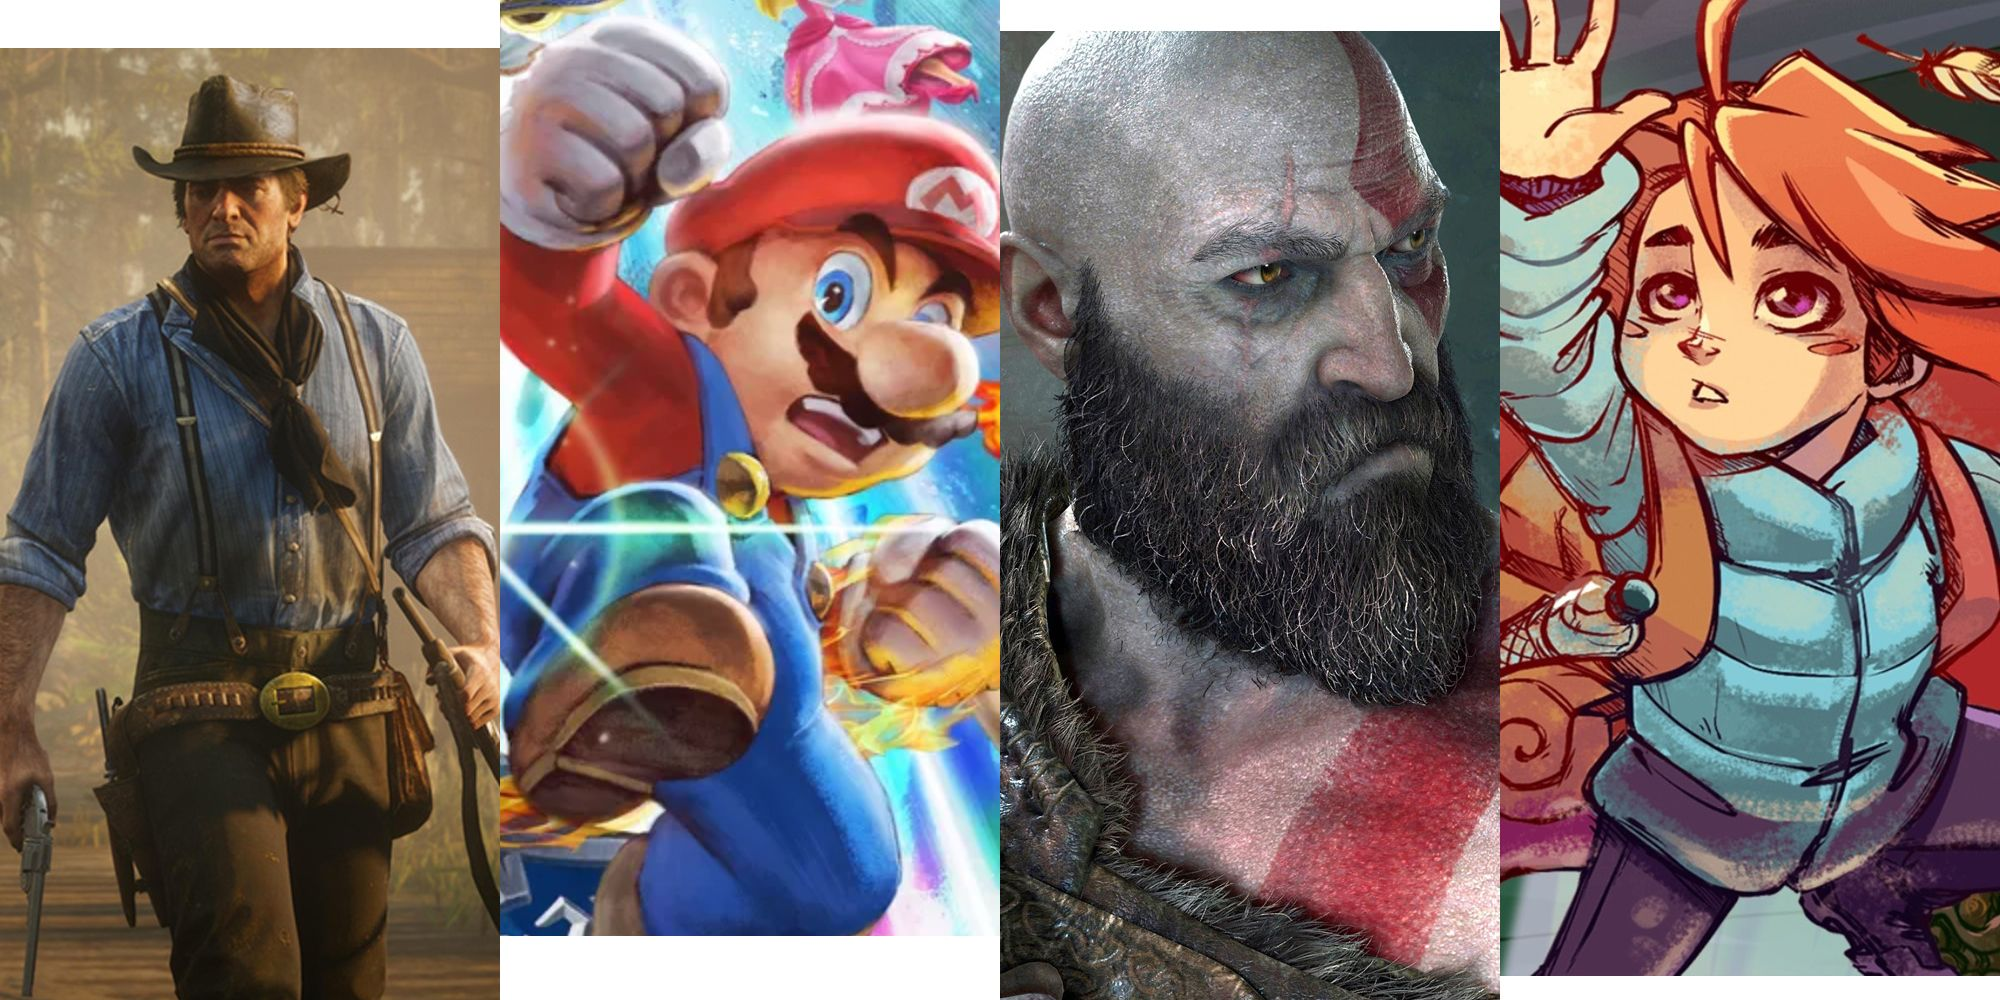 13 Best Video Games of 2018 - Best New Video Games 2018